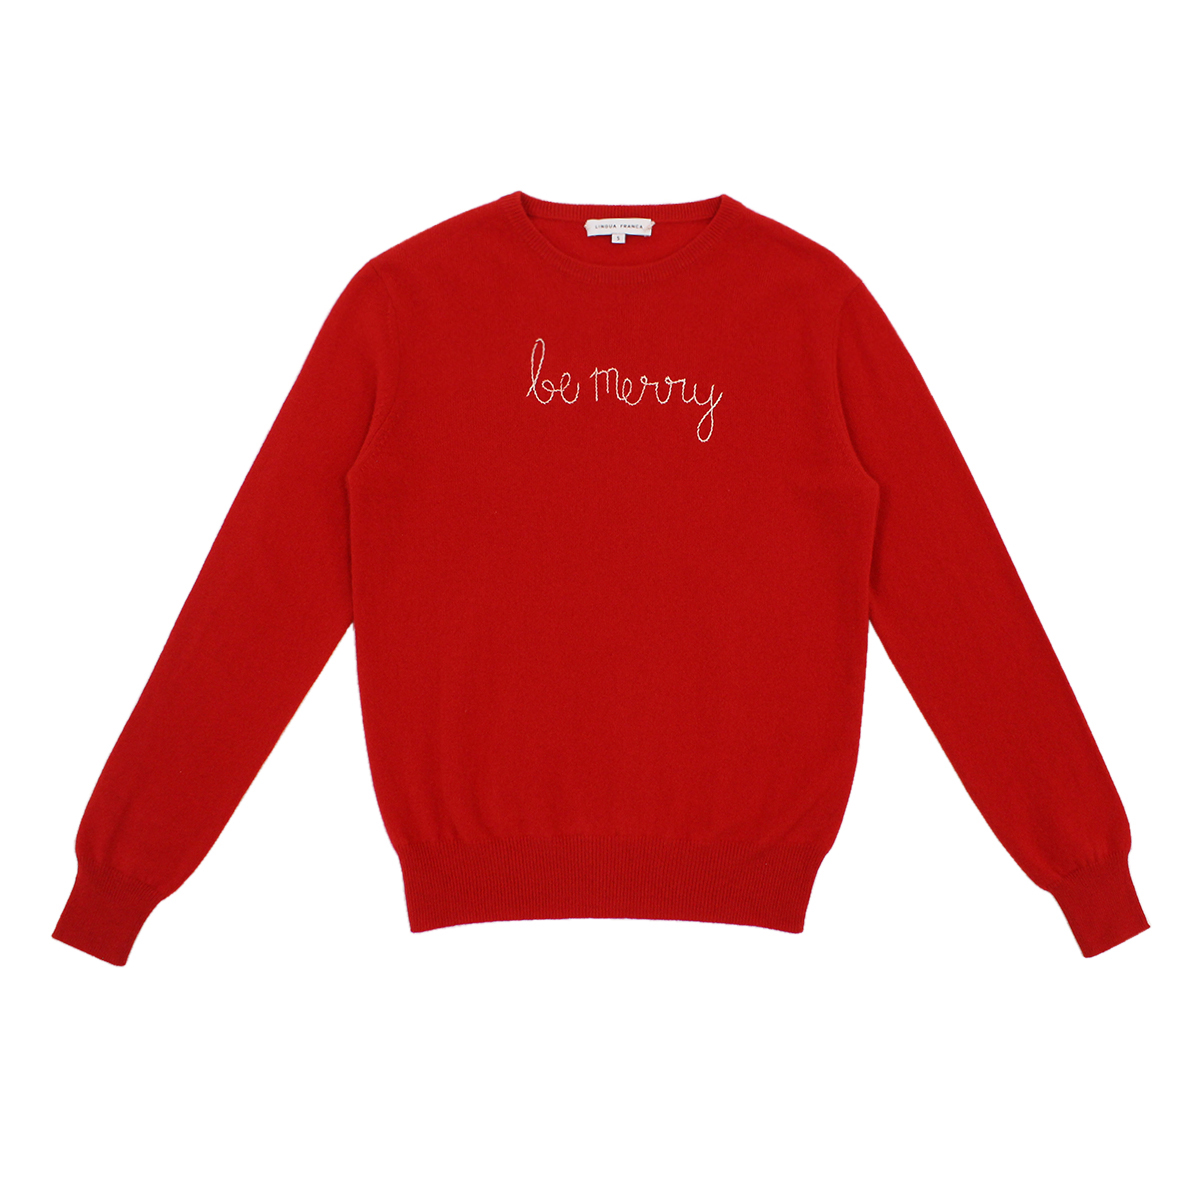 Lingua Franca Adult Cashmere Sweater in Red w/ Be Merry embroidery